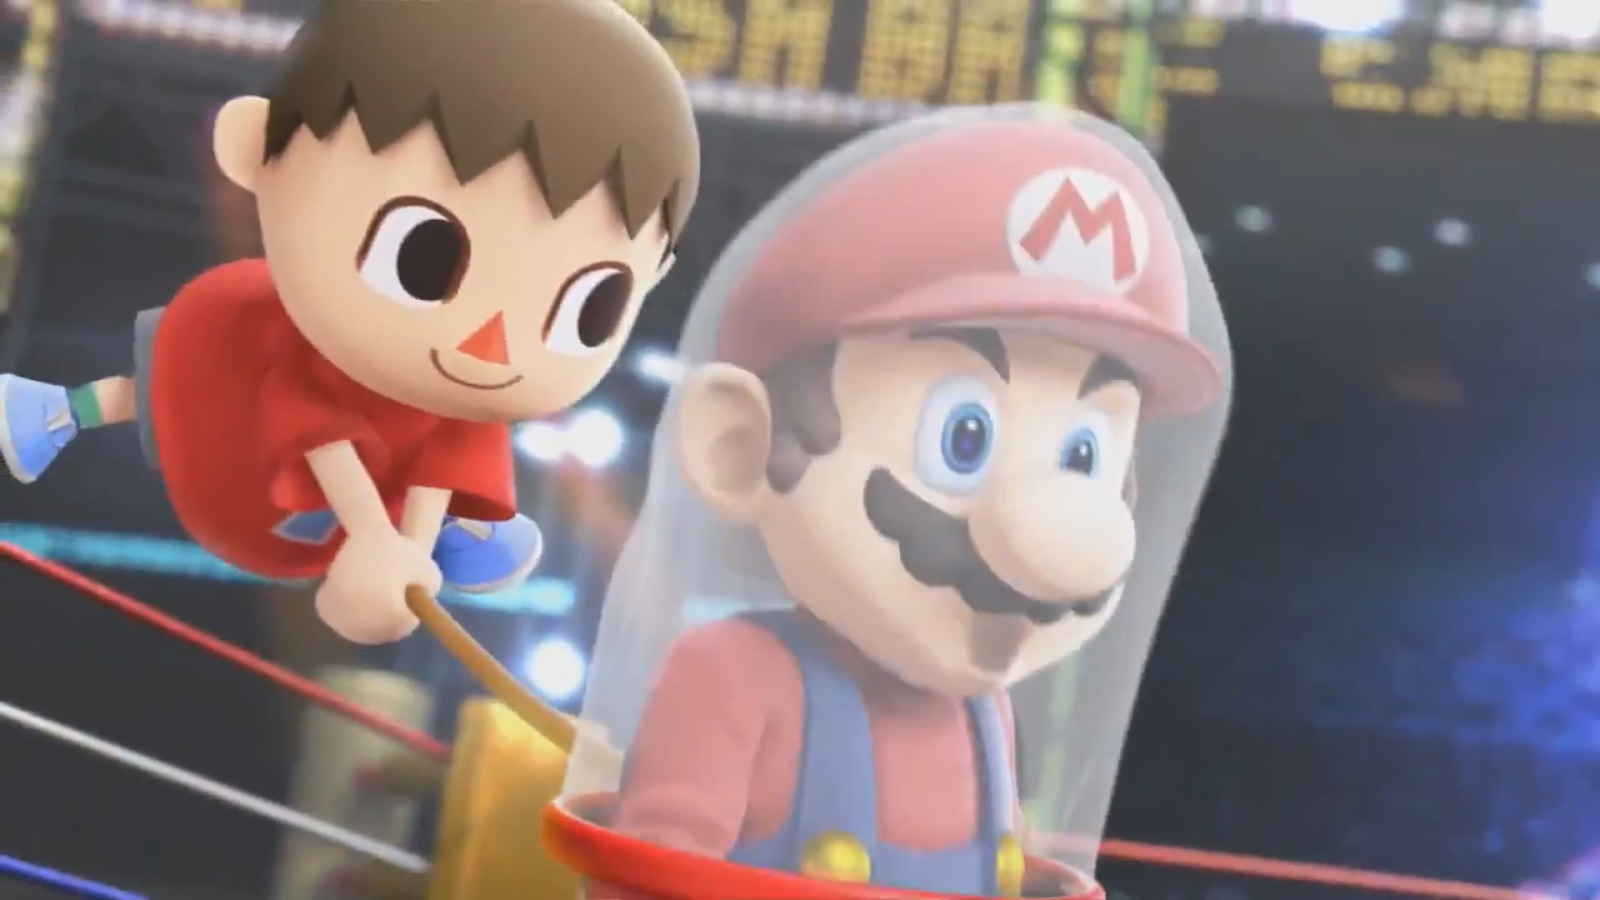 image villager catches mario png animal crossing wiki fandom